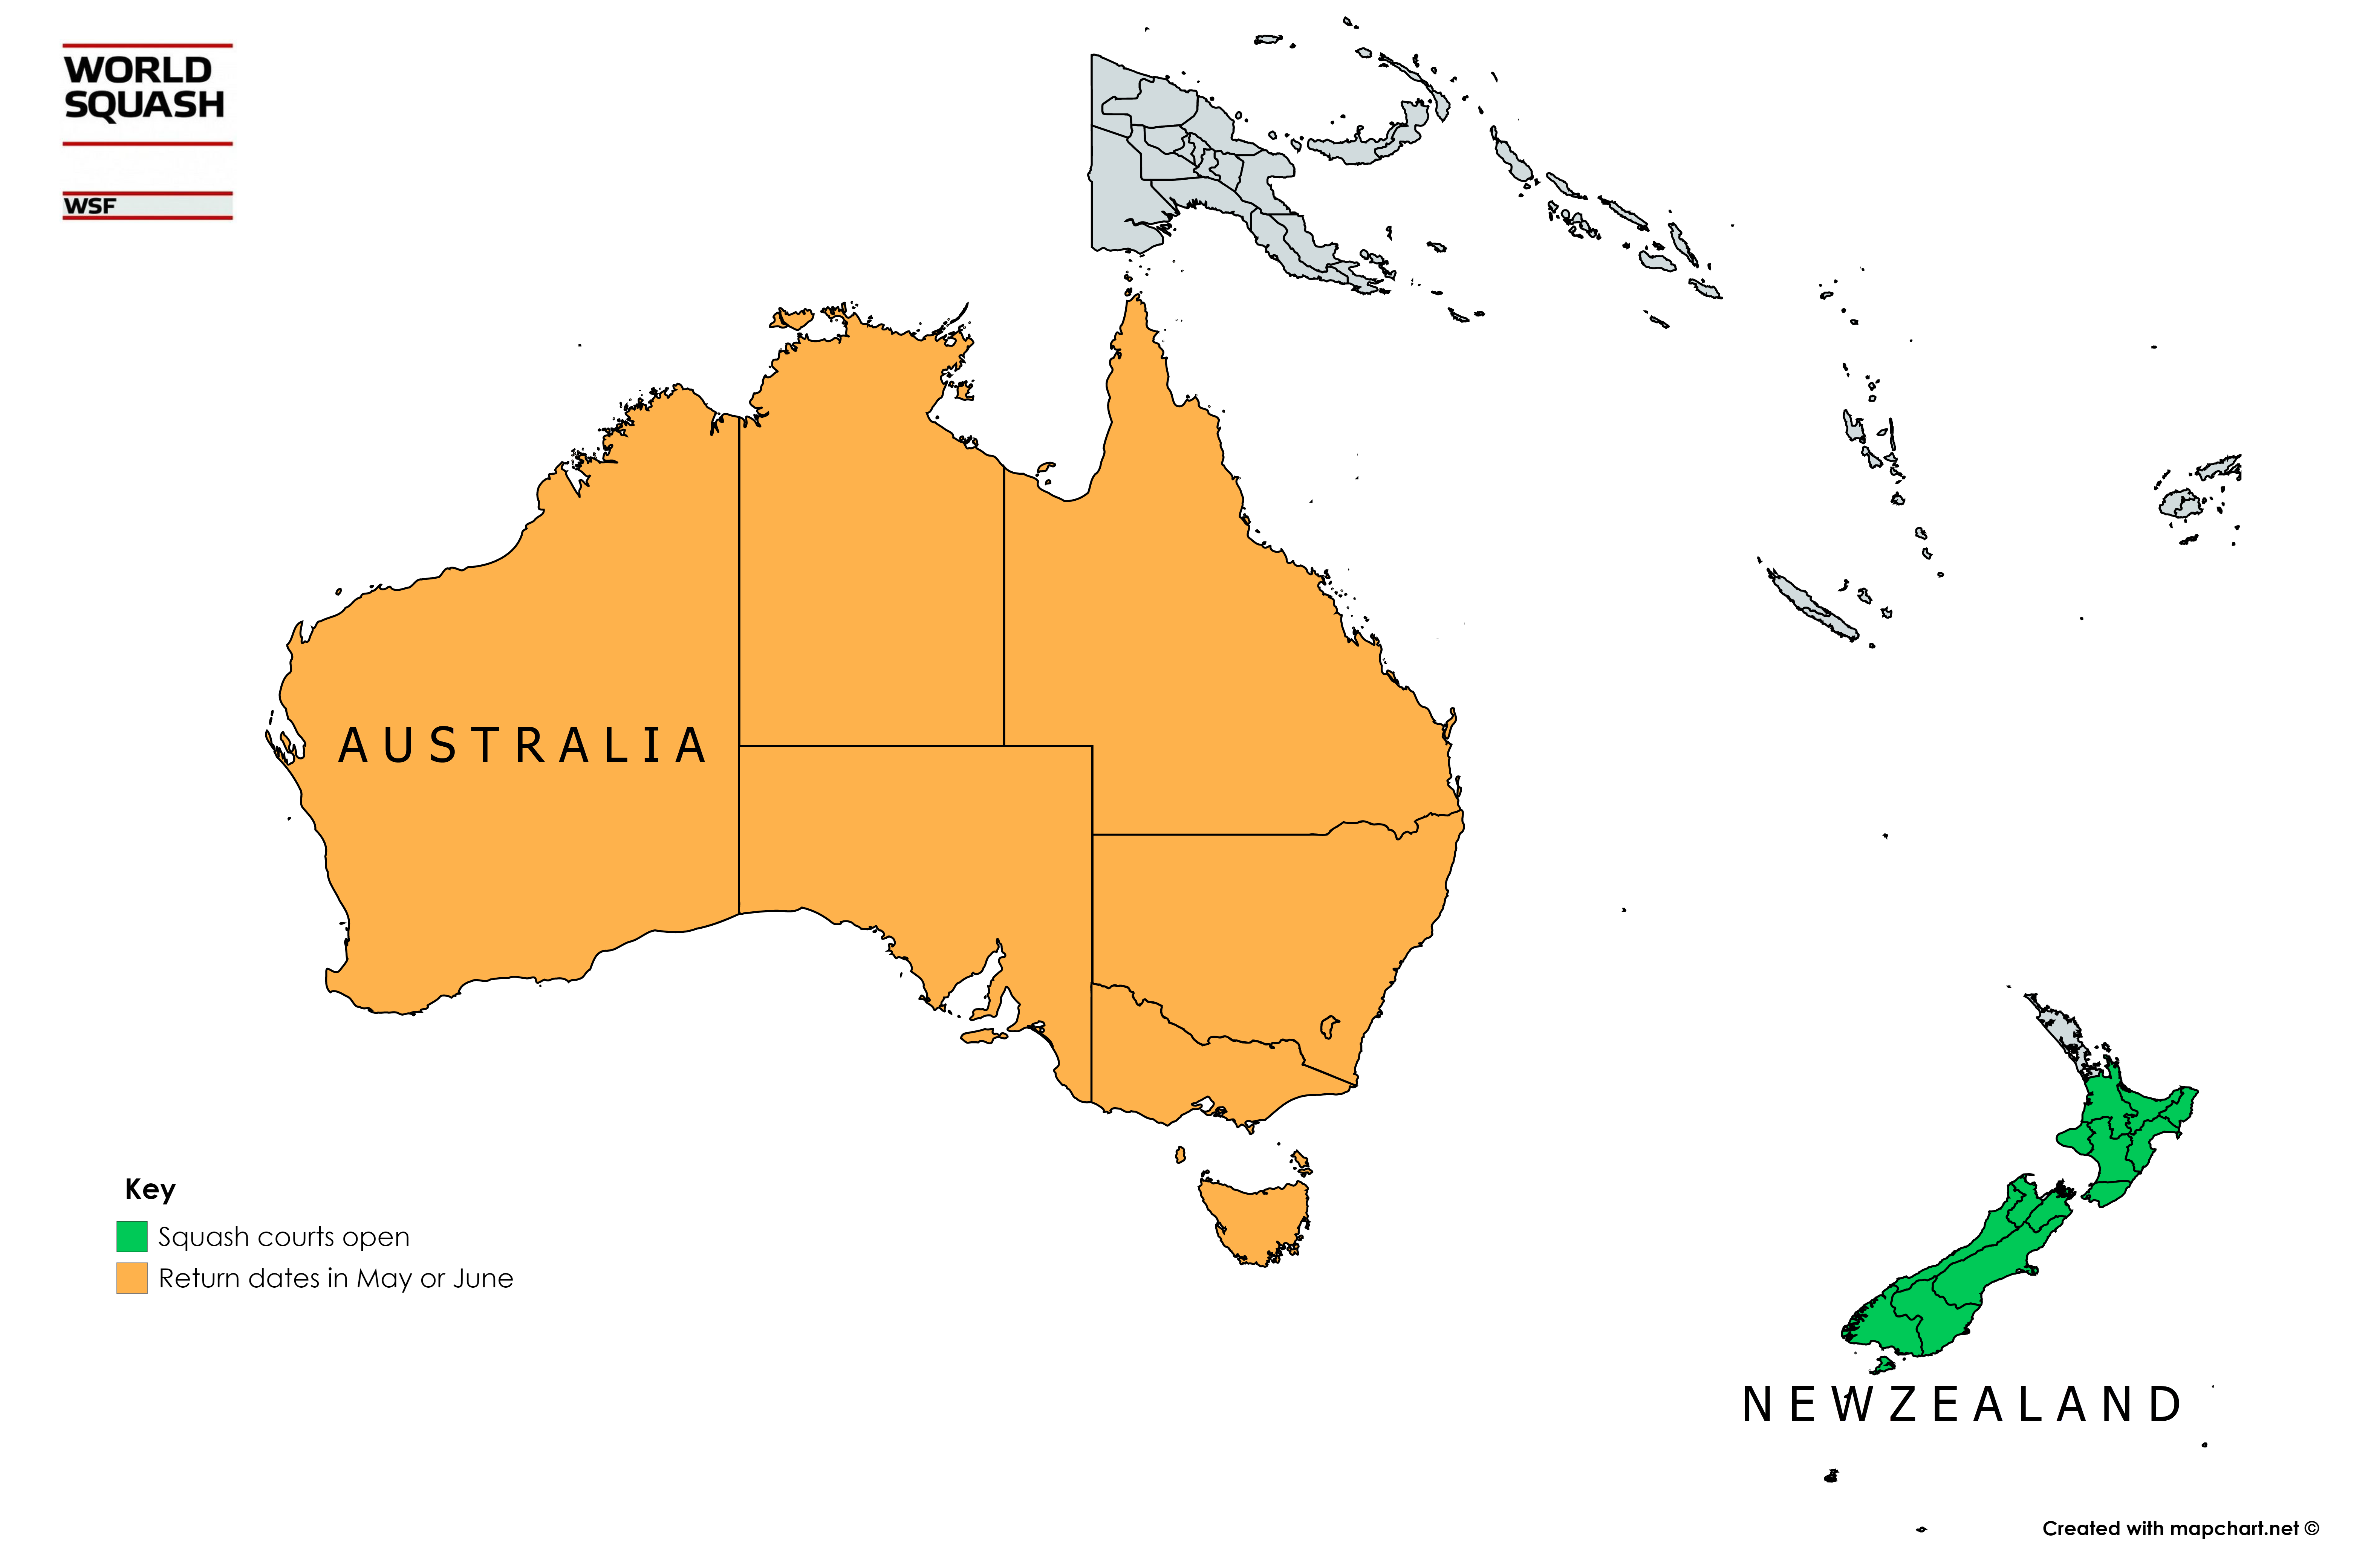 The State of Squash in Oceania